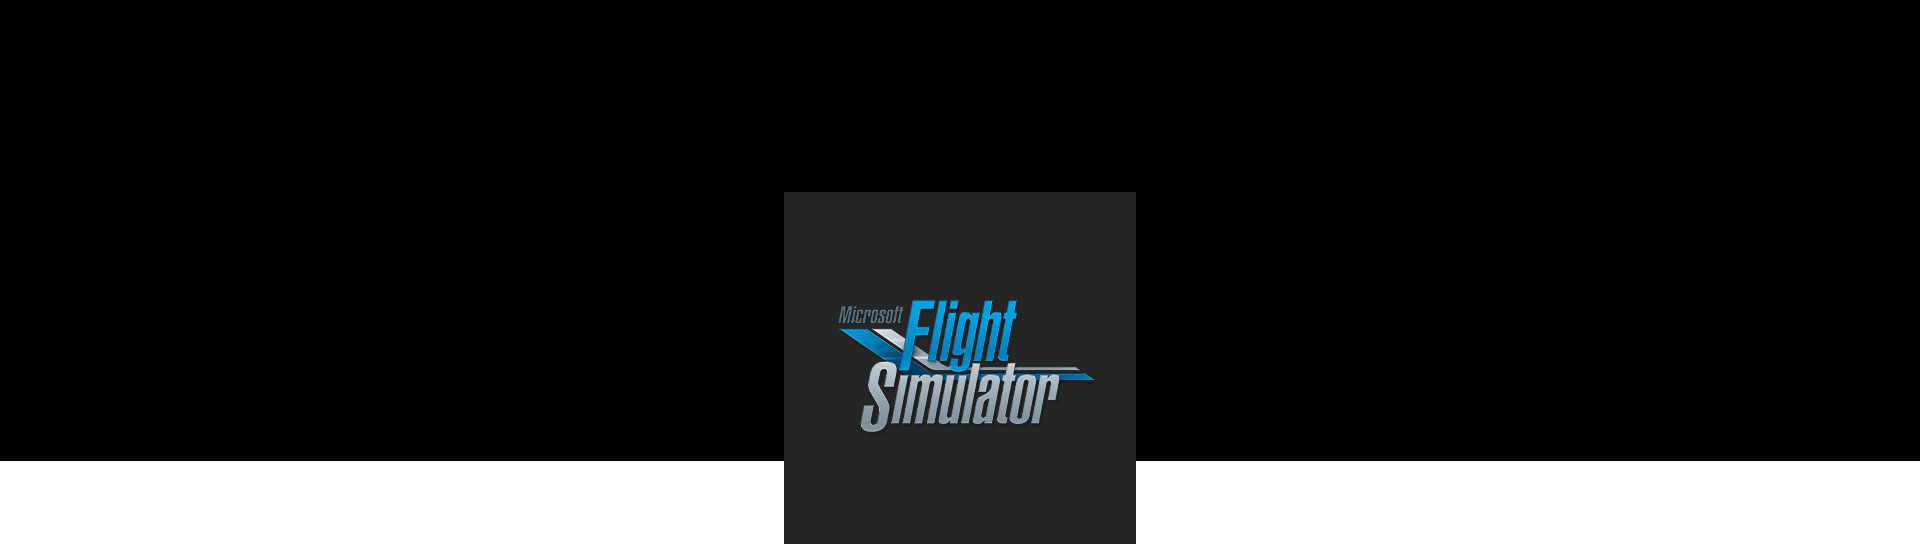 Microsoft Flight Simulator 標誌